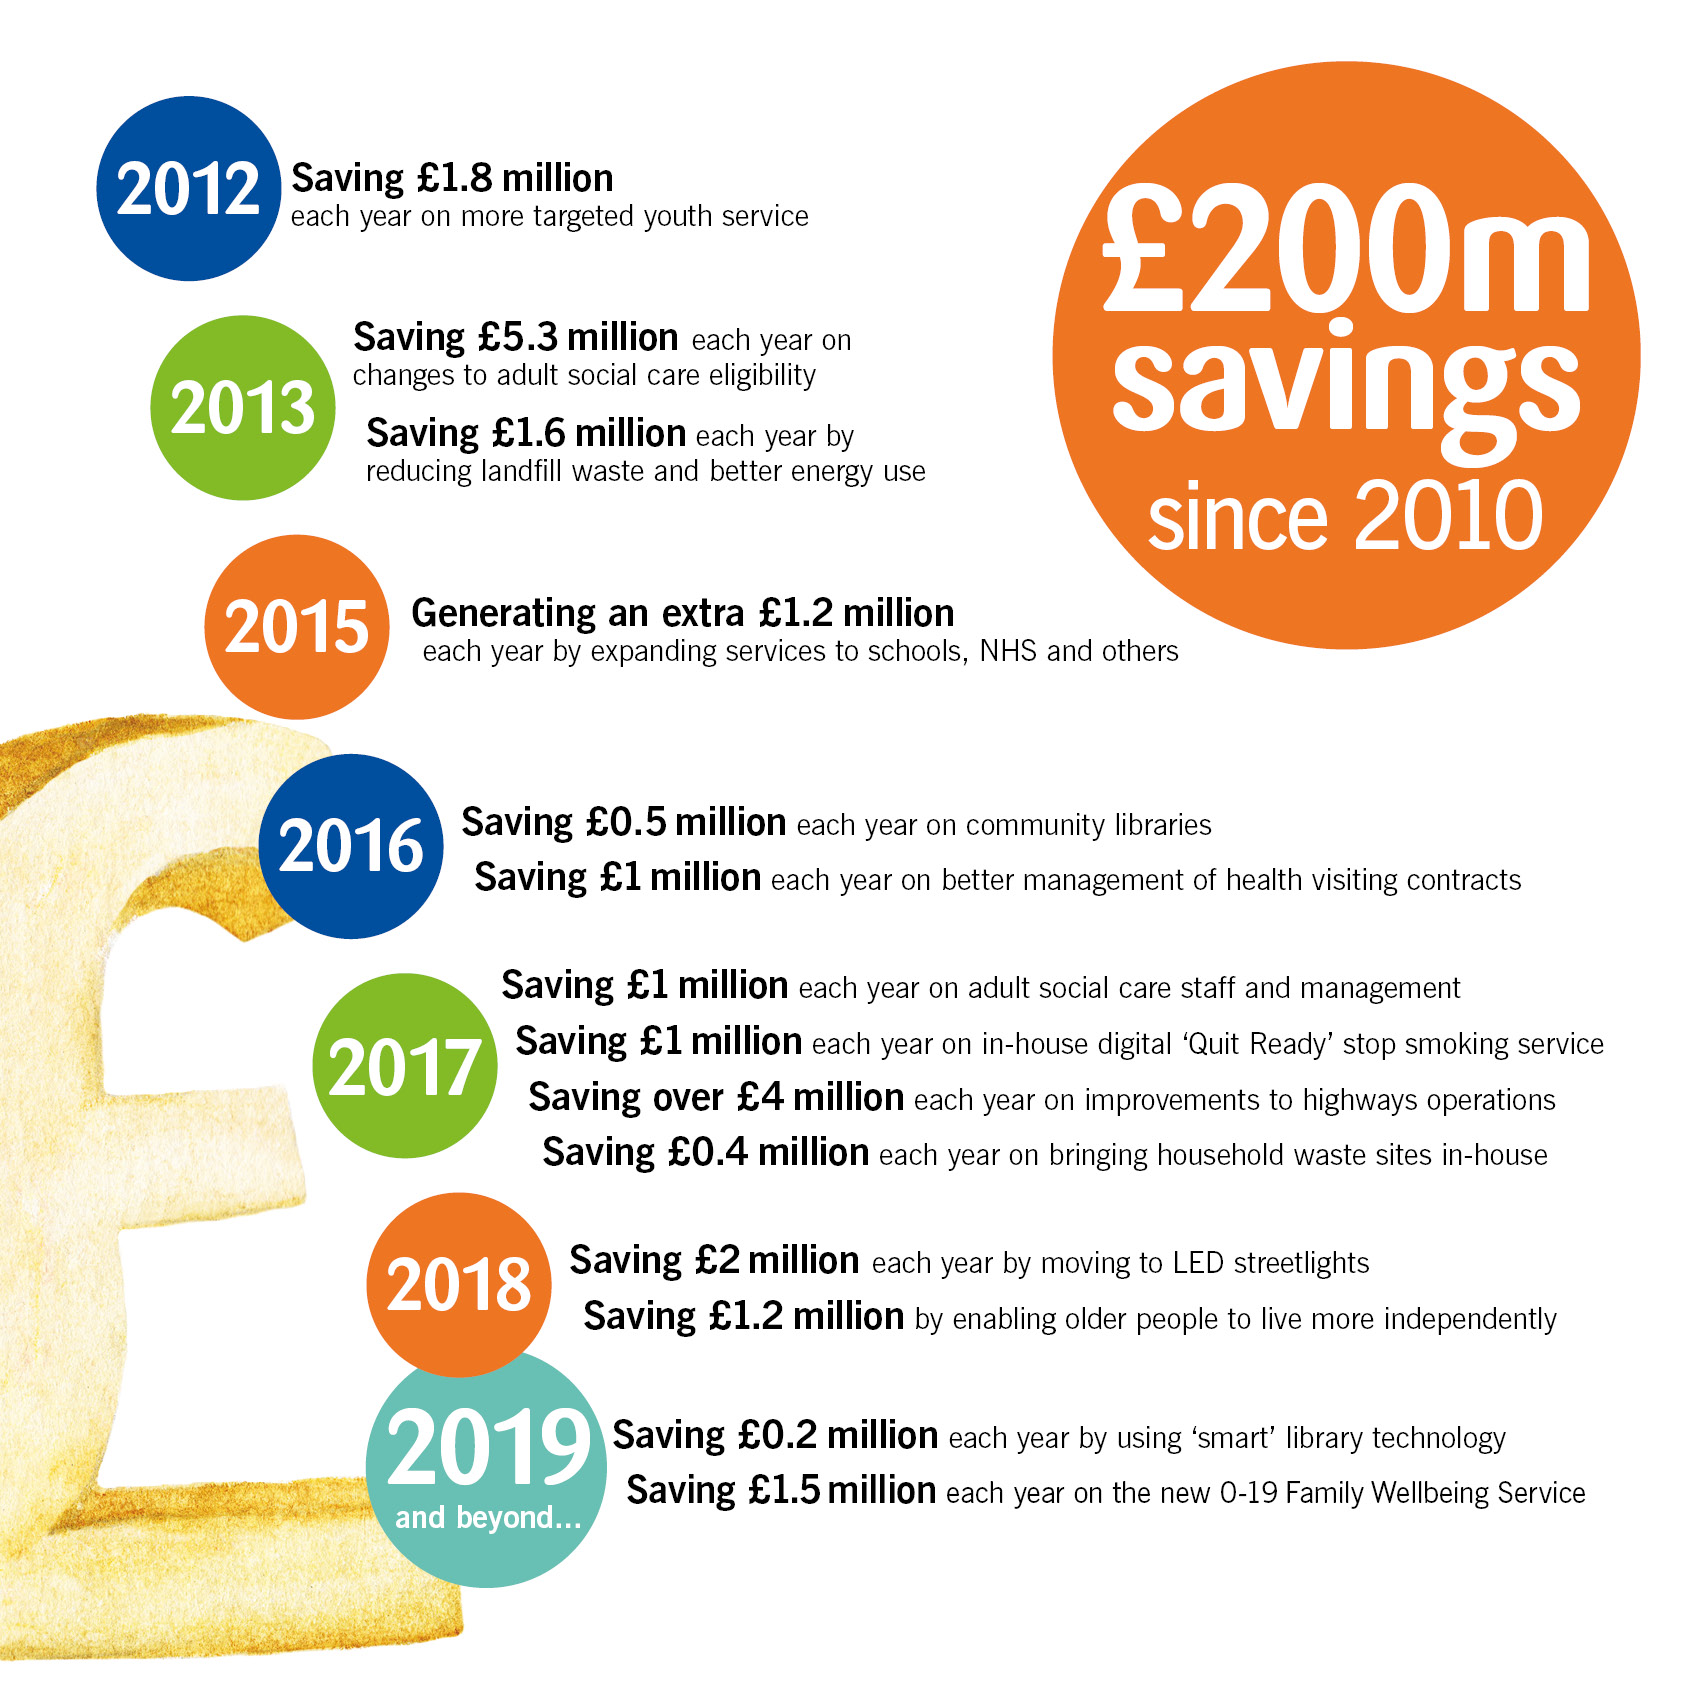 Savings the council has made since 2012